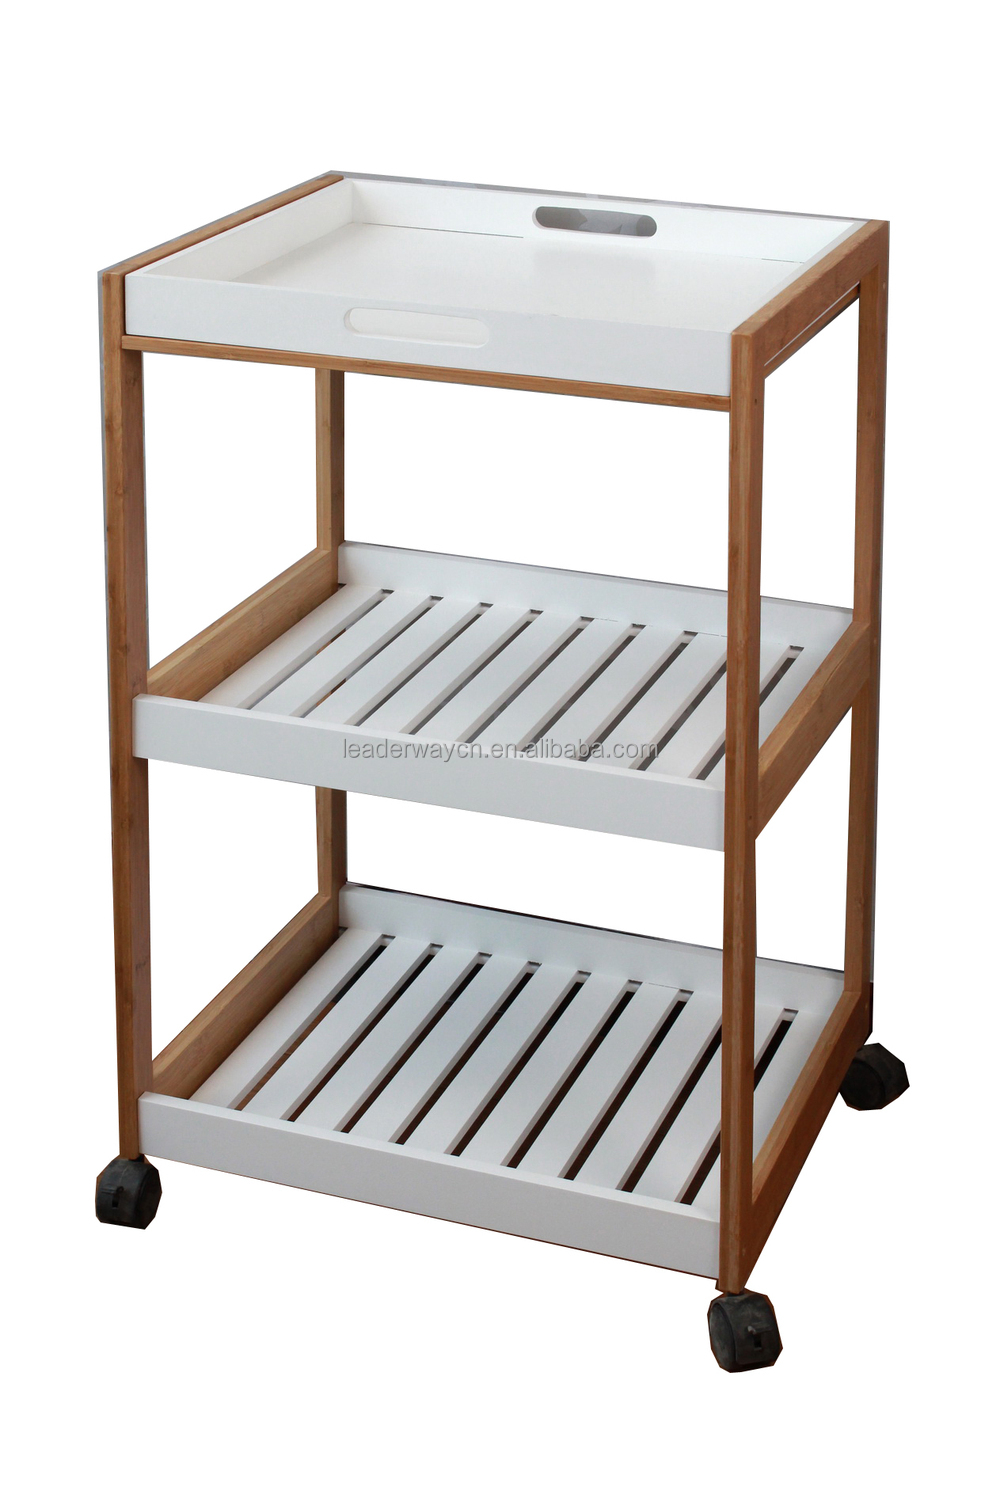 Home furniture wood stainless steel kitchen trolley design for Kitchen trolley design